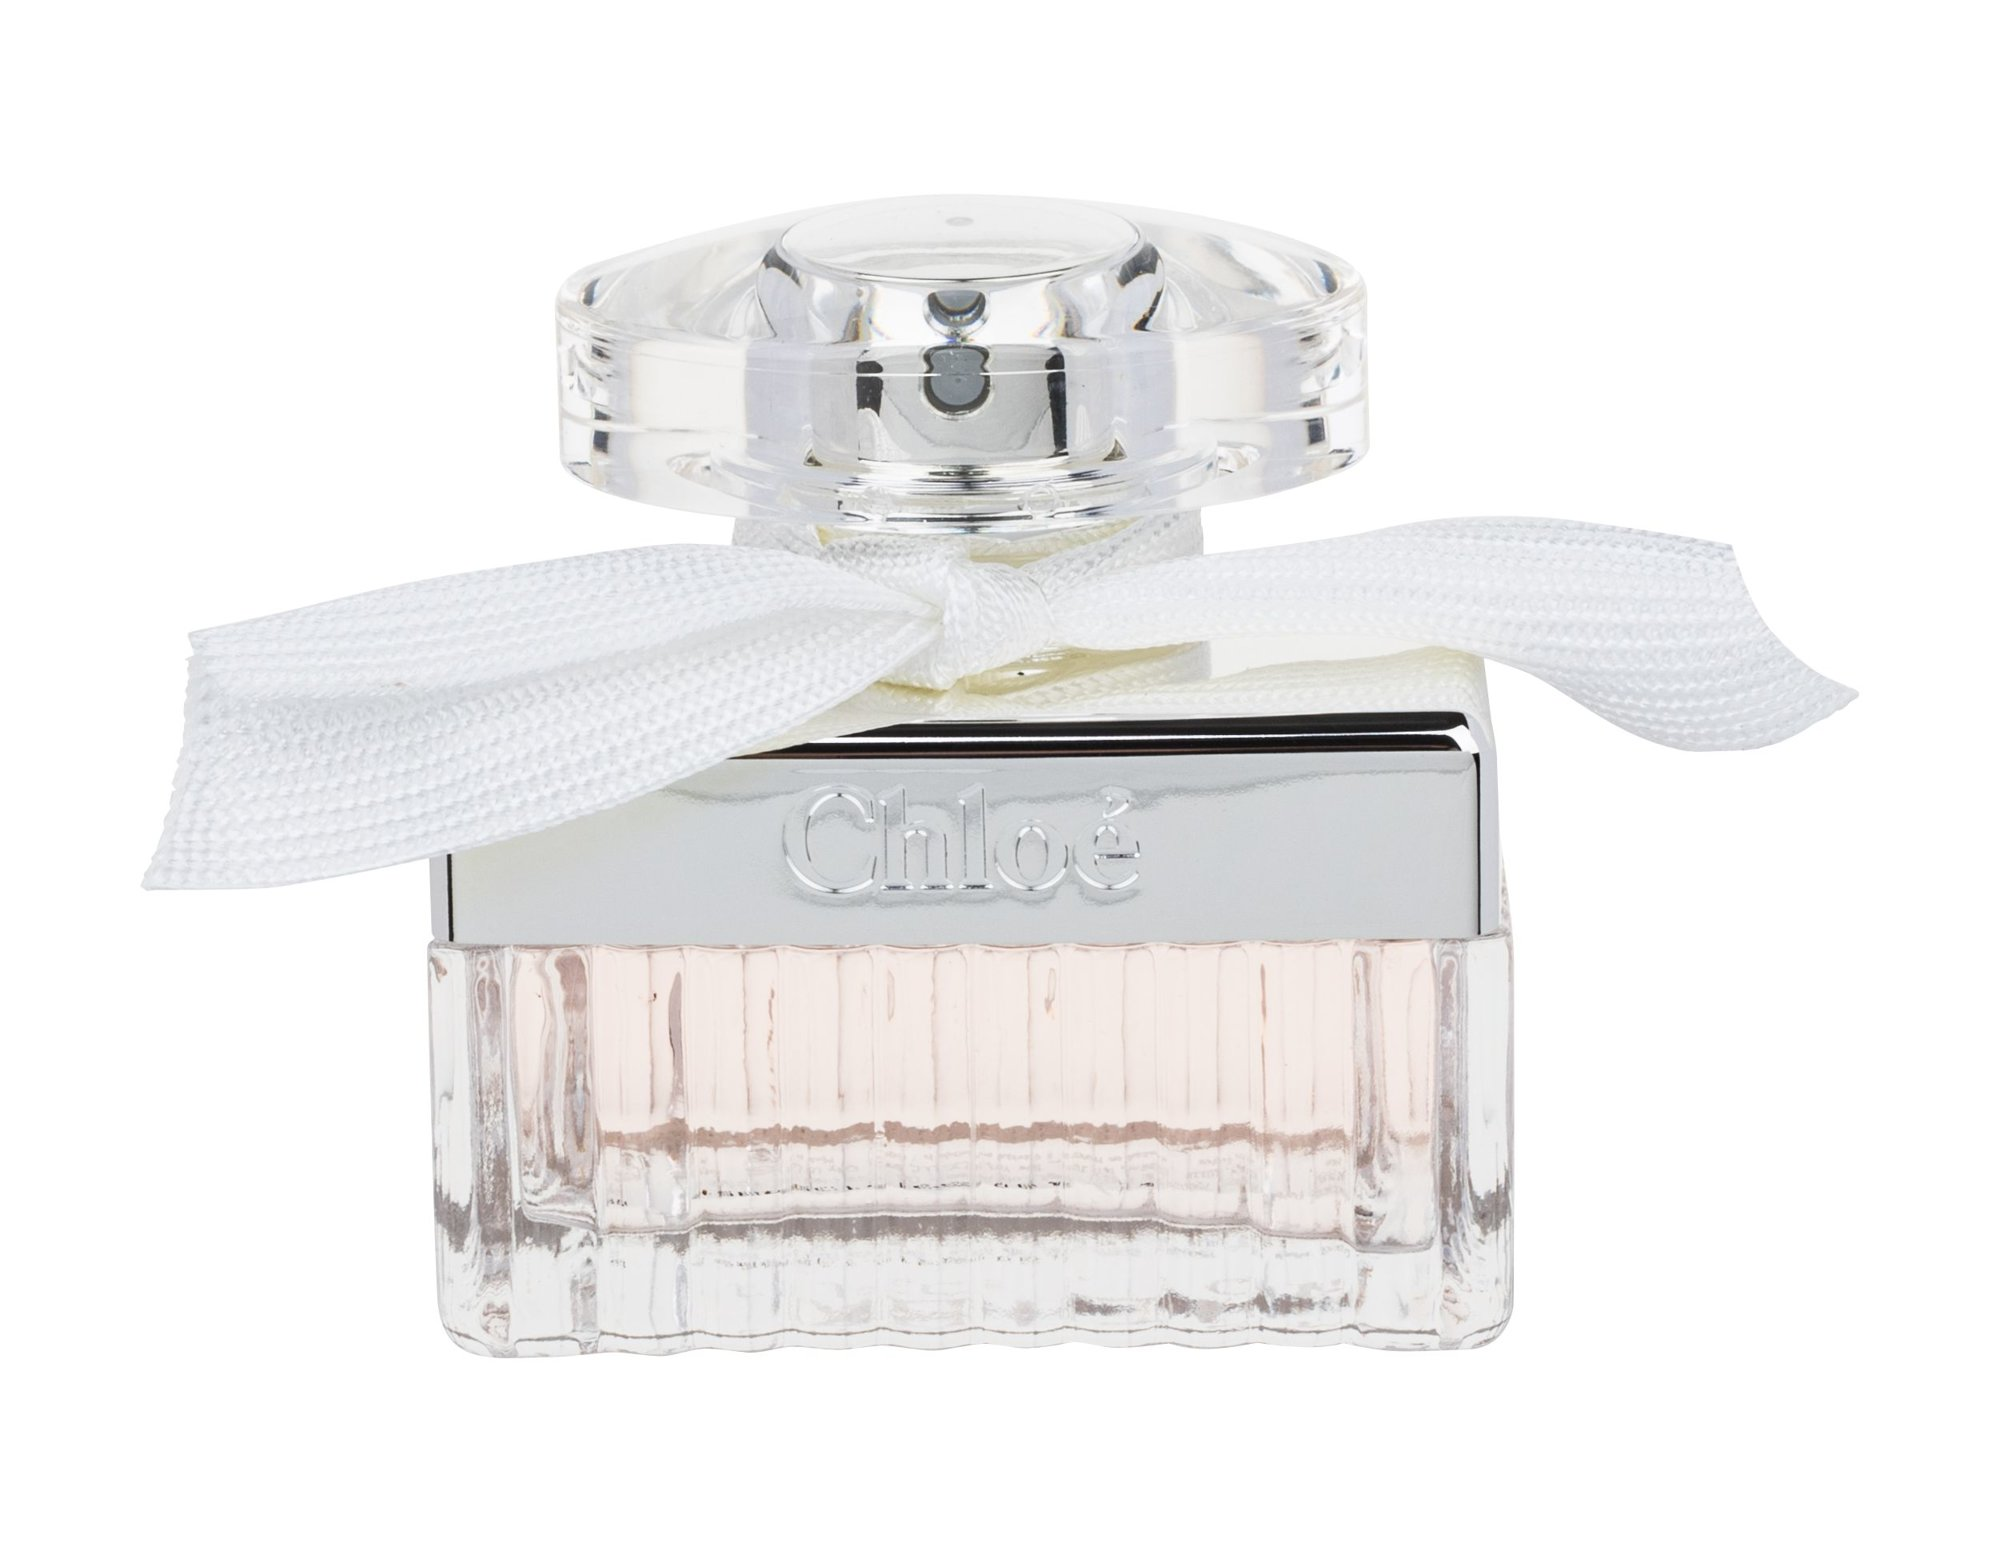 Chloe Chloe EDT 30ml